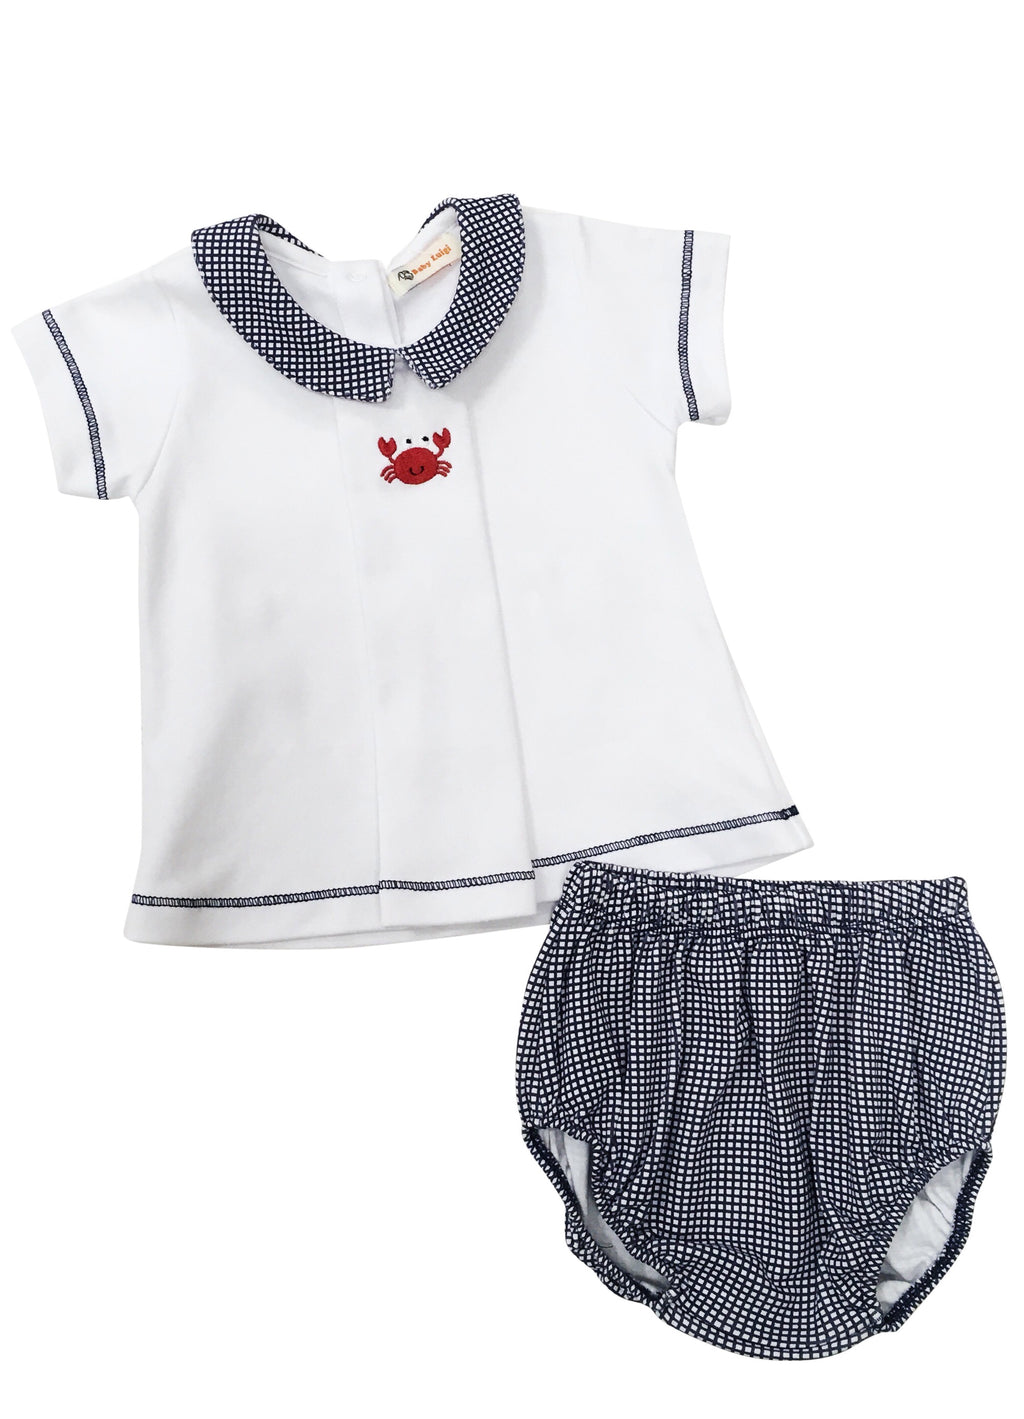 Boy White with Navy Gingham Knit Bloomer Set - Crab - Born Childrens Boutique